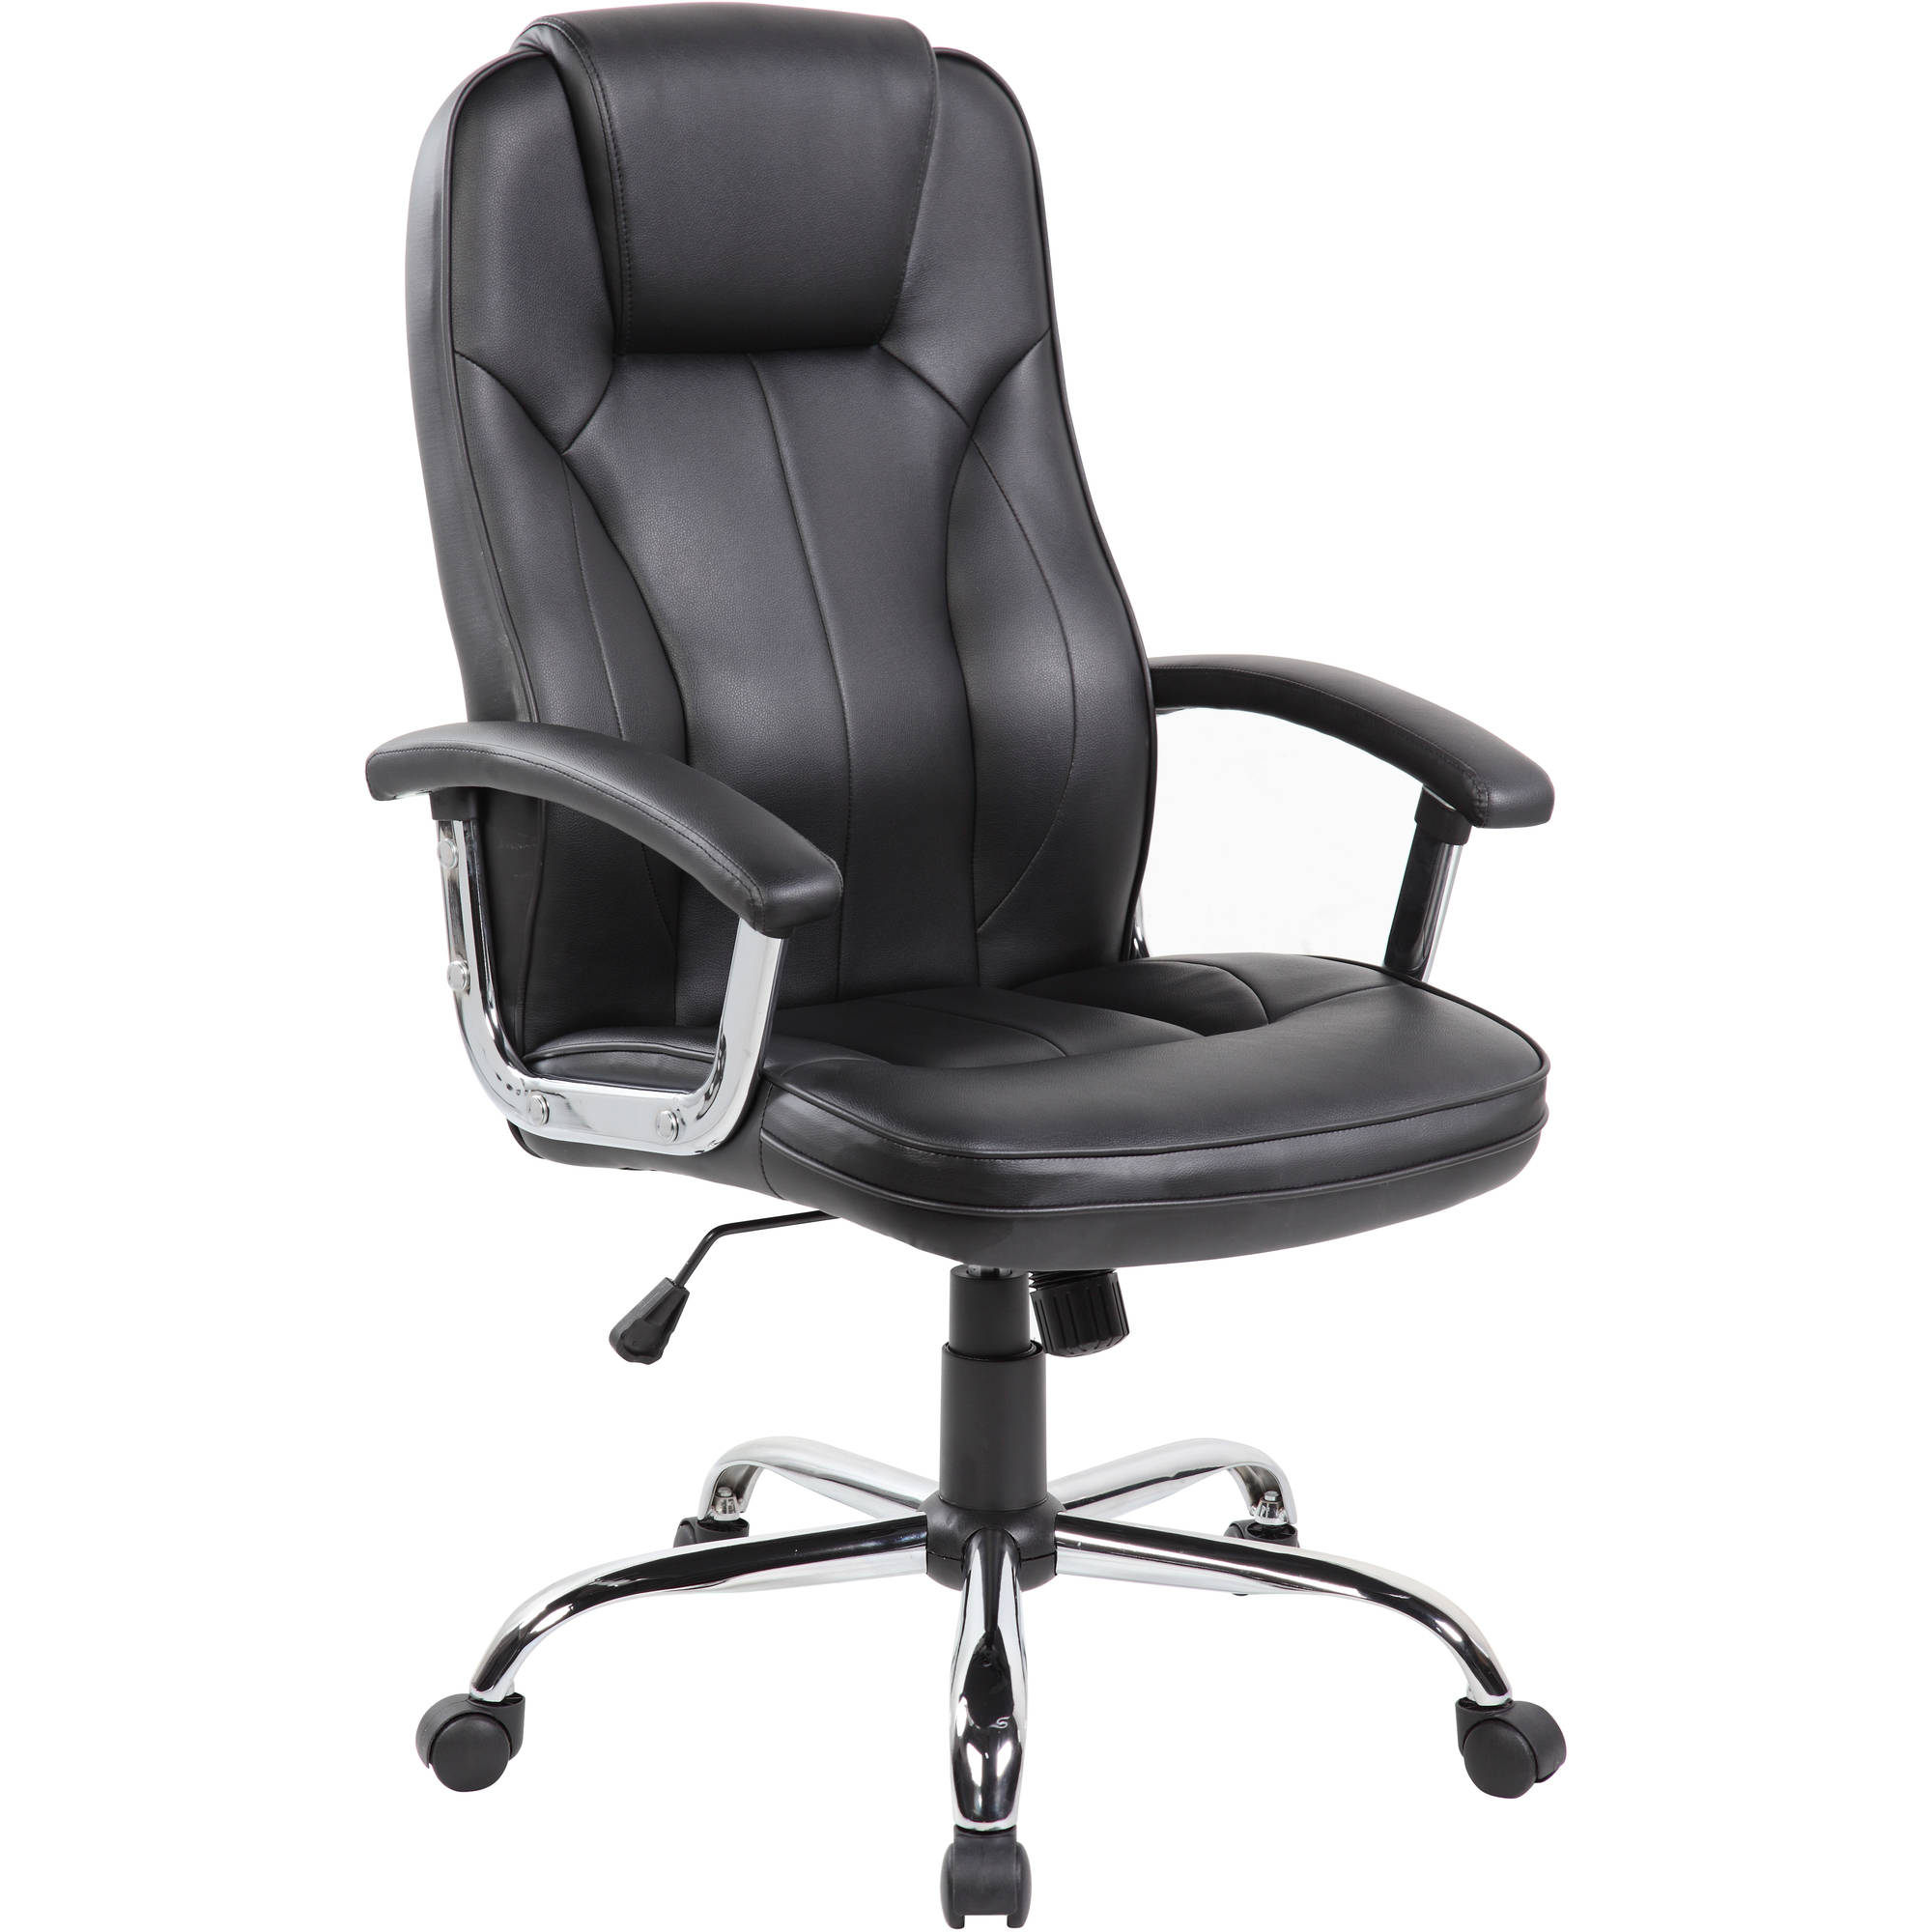 Executive High Back PU Leather Office Task Chair with Chrome Base(9313), Multiple Colors